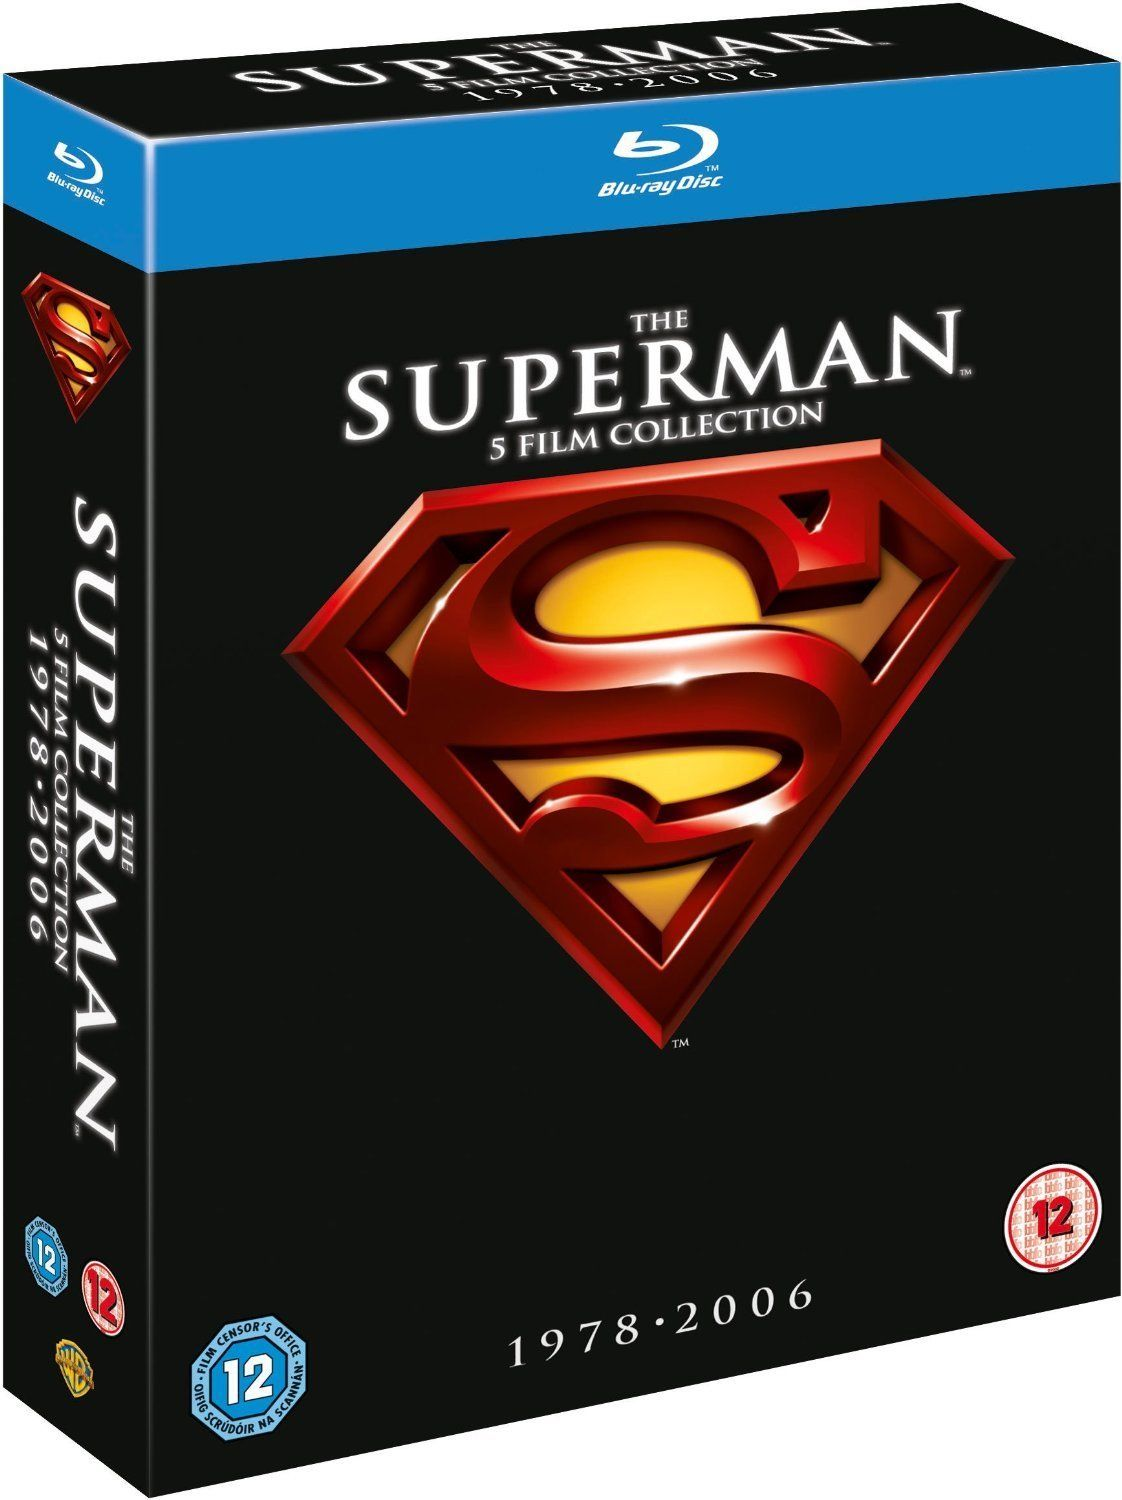 The Superman 5 Film Collection 1978-2006 (Blu-ray) - 1